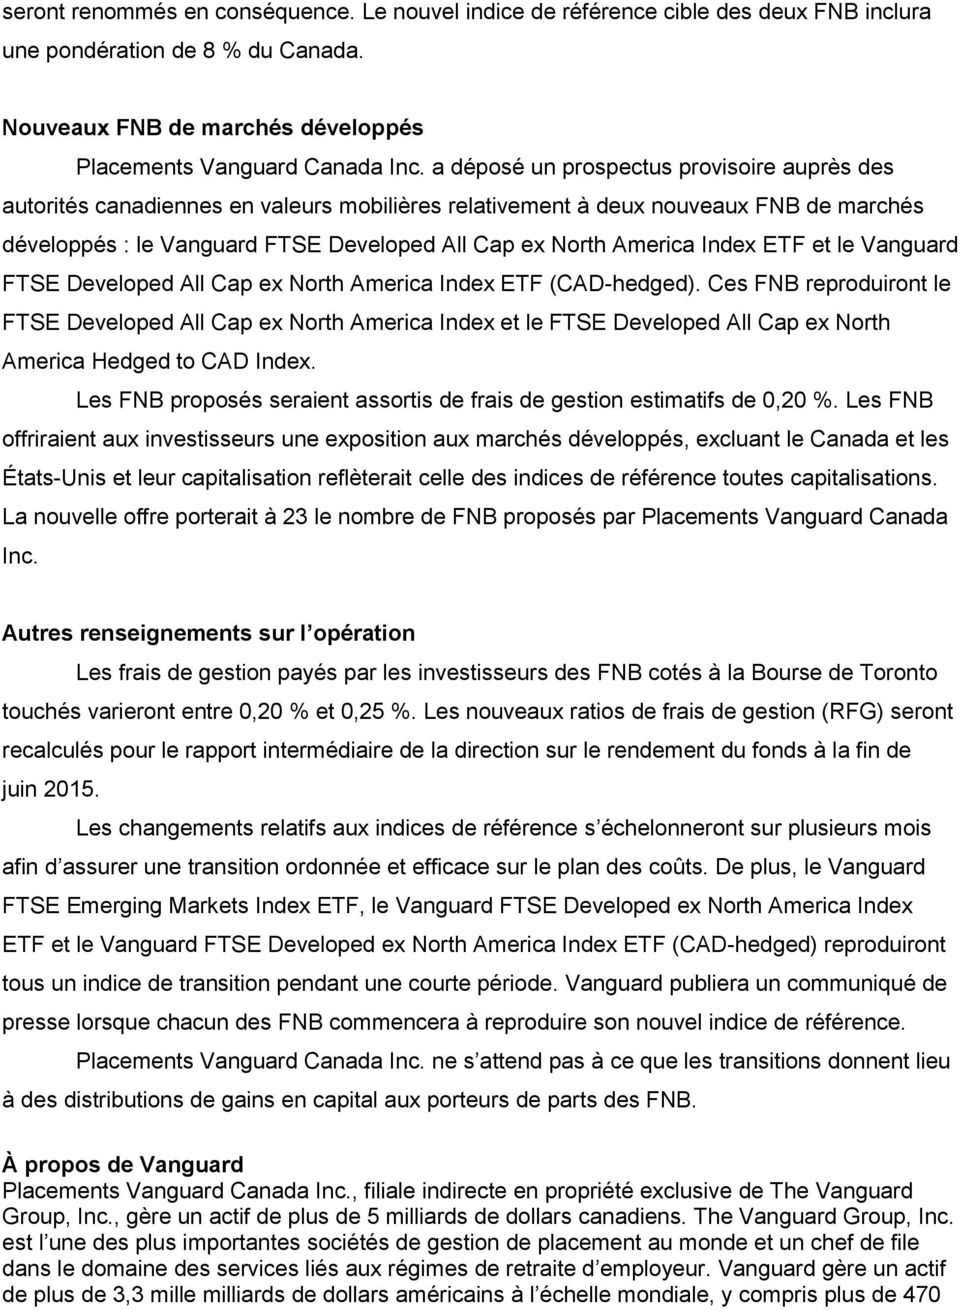 Vanguard All Cap ex North America ETF (CAD-hedged). Ces FNB reproduiront le All Cap ex North America et le All Cap ex North America Hedged to CAD.